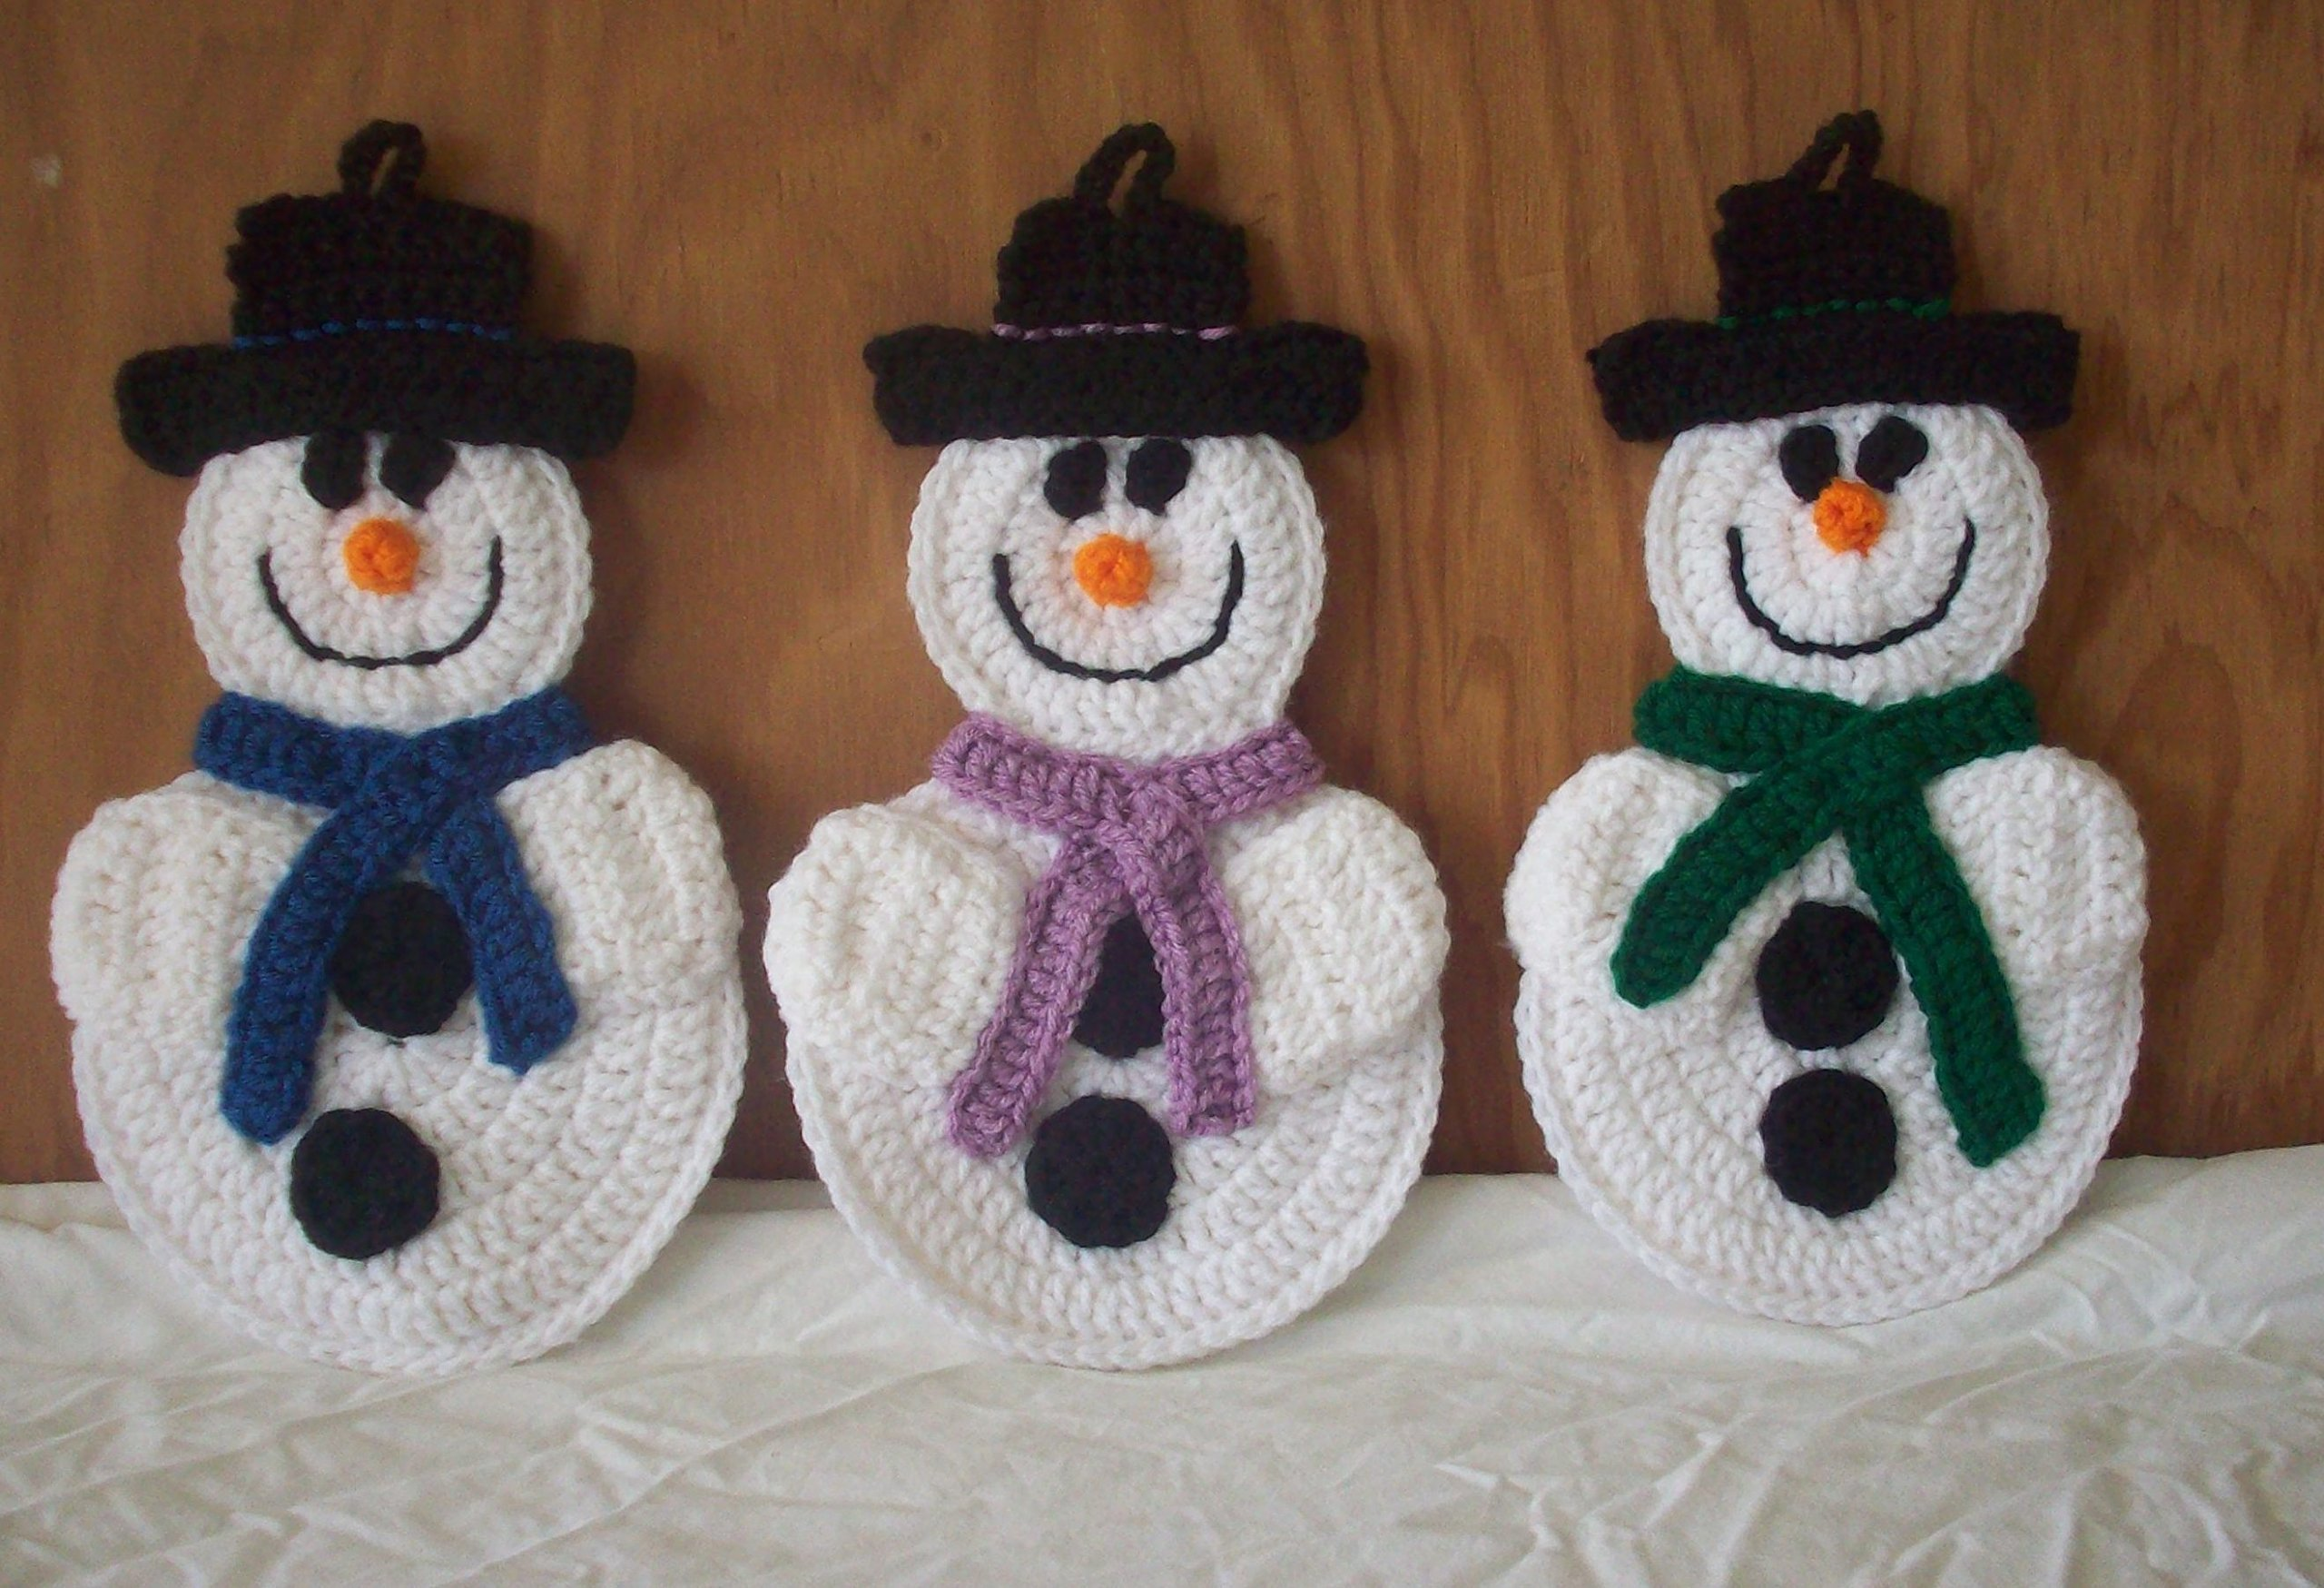 Crocheted Snowman Pot Holder / Hot Pad / Wall Decoration